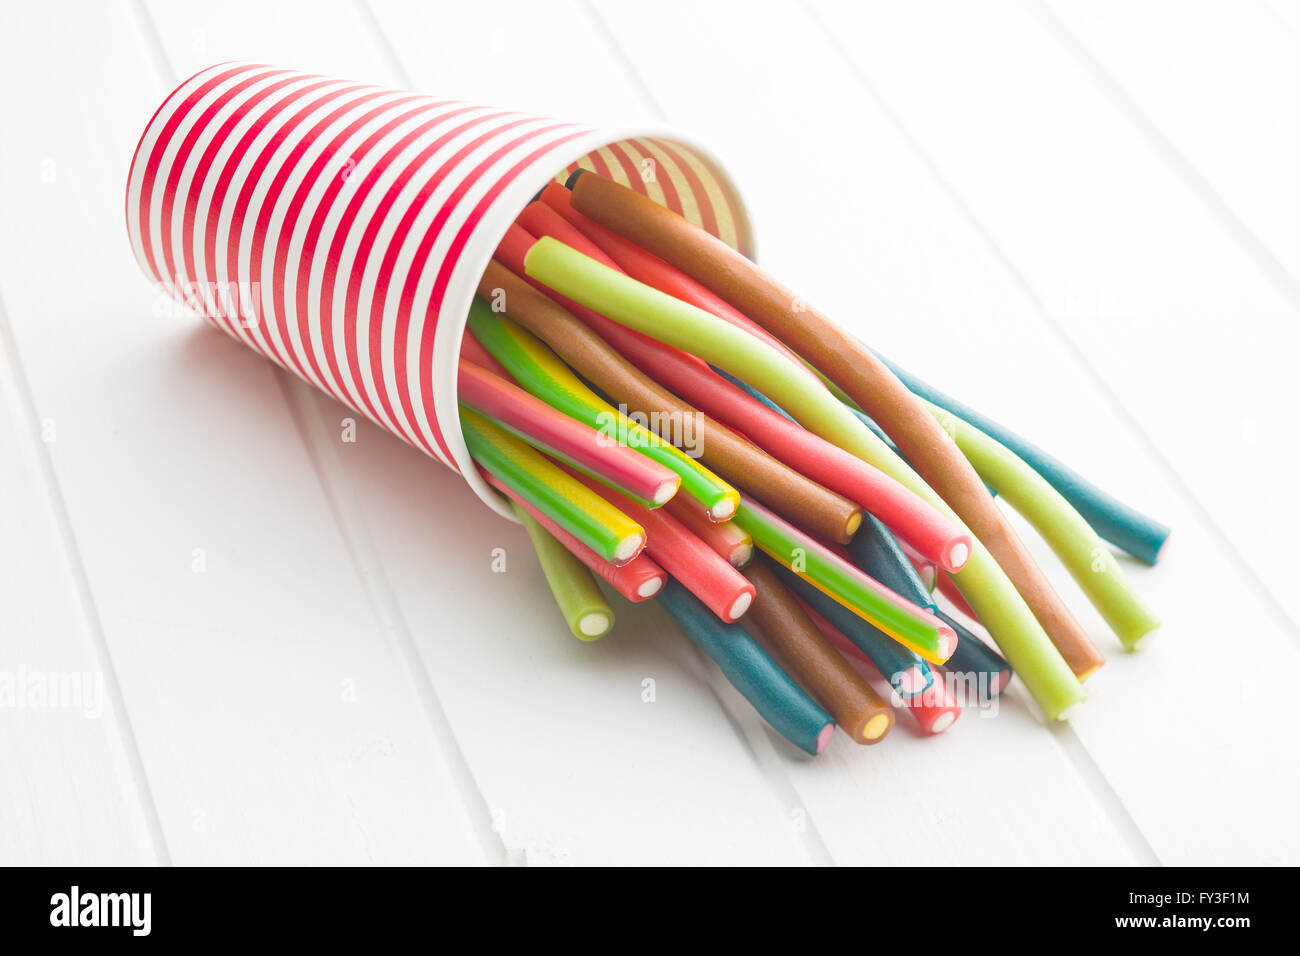 Sweet gummy sticks with different flavor. Tasty candies in paper cup. - Stock Image